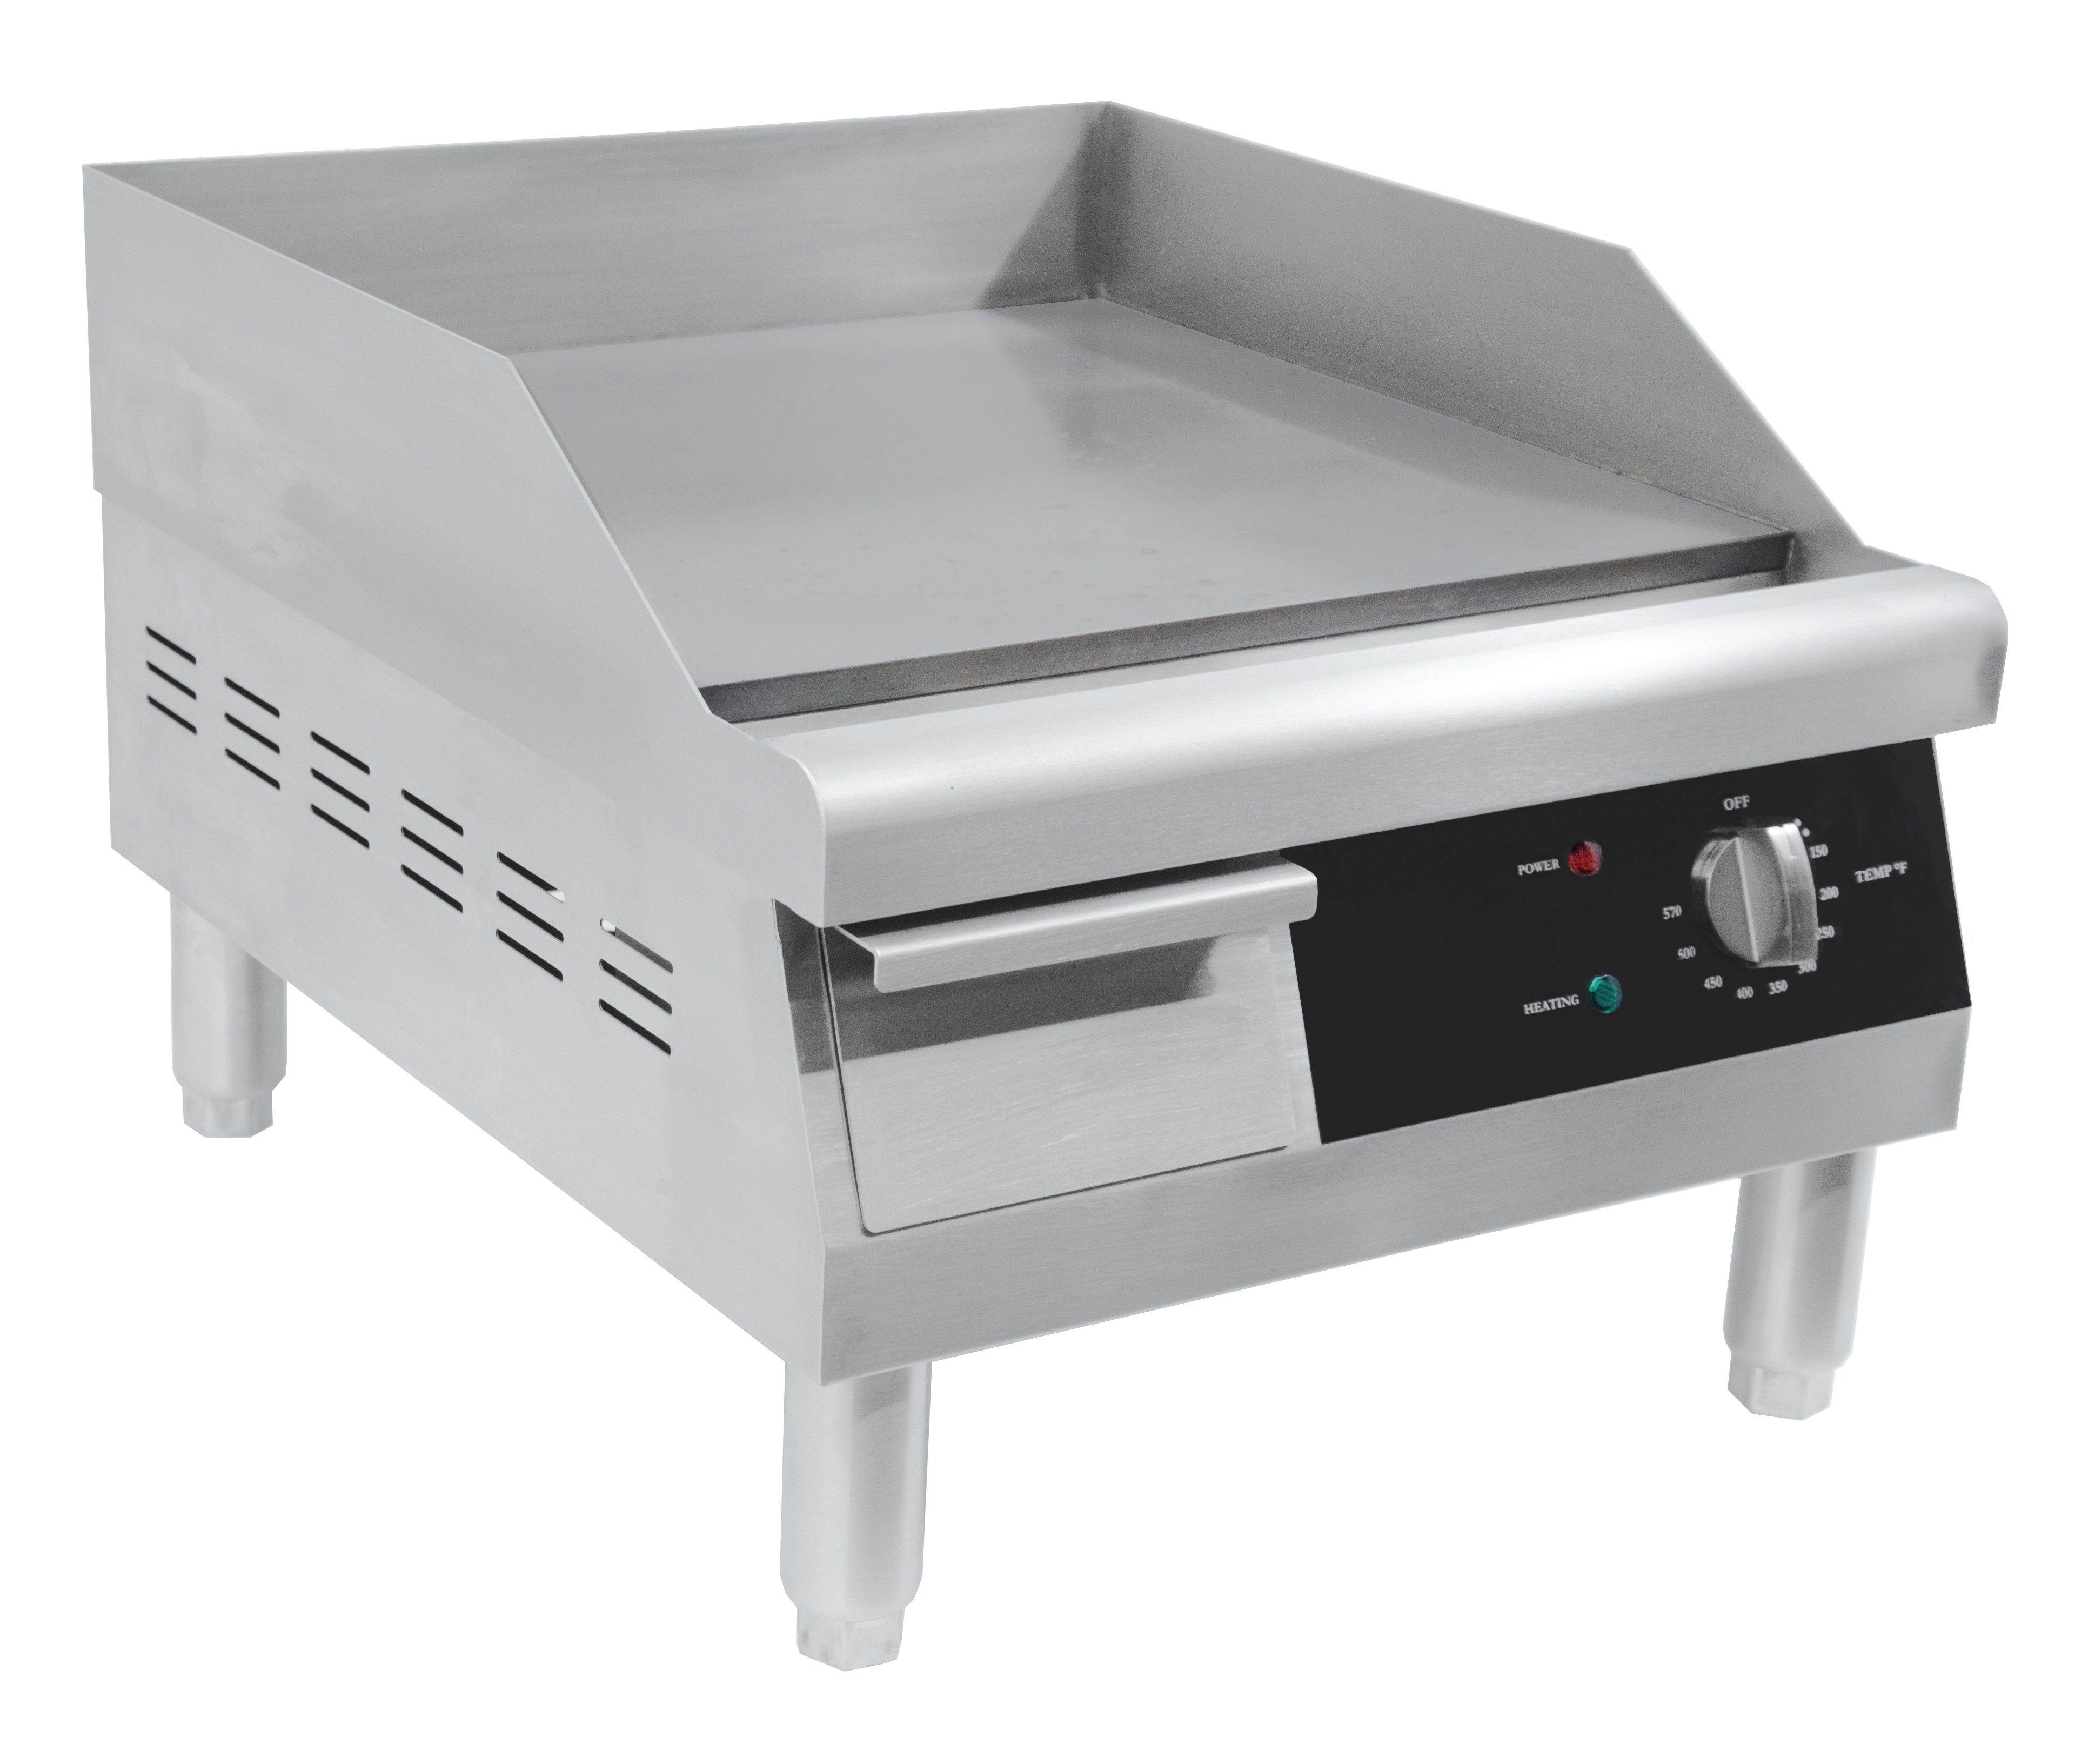 Omcan CE-CN-0405 food equipment > cooking equipment > griddles